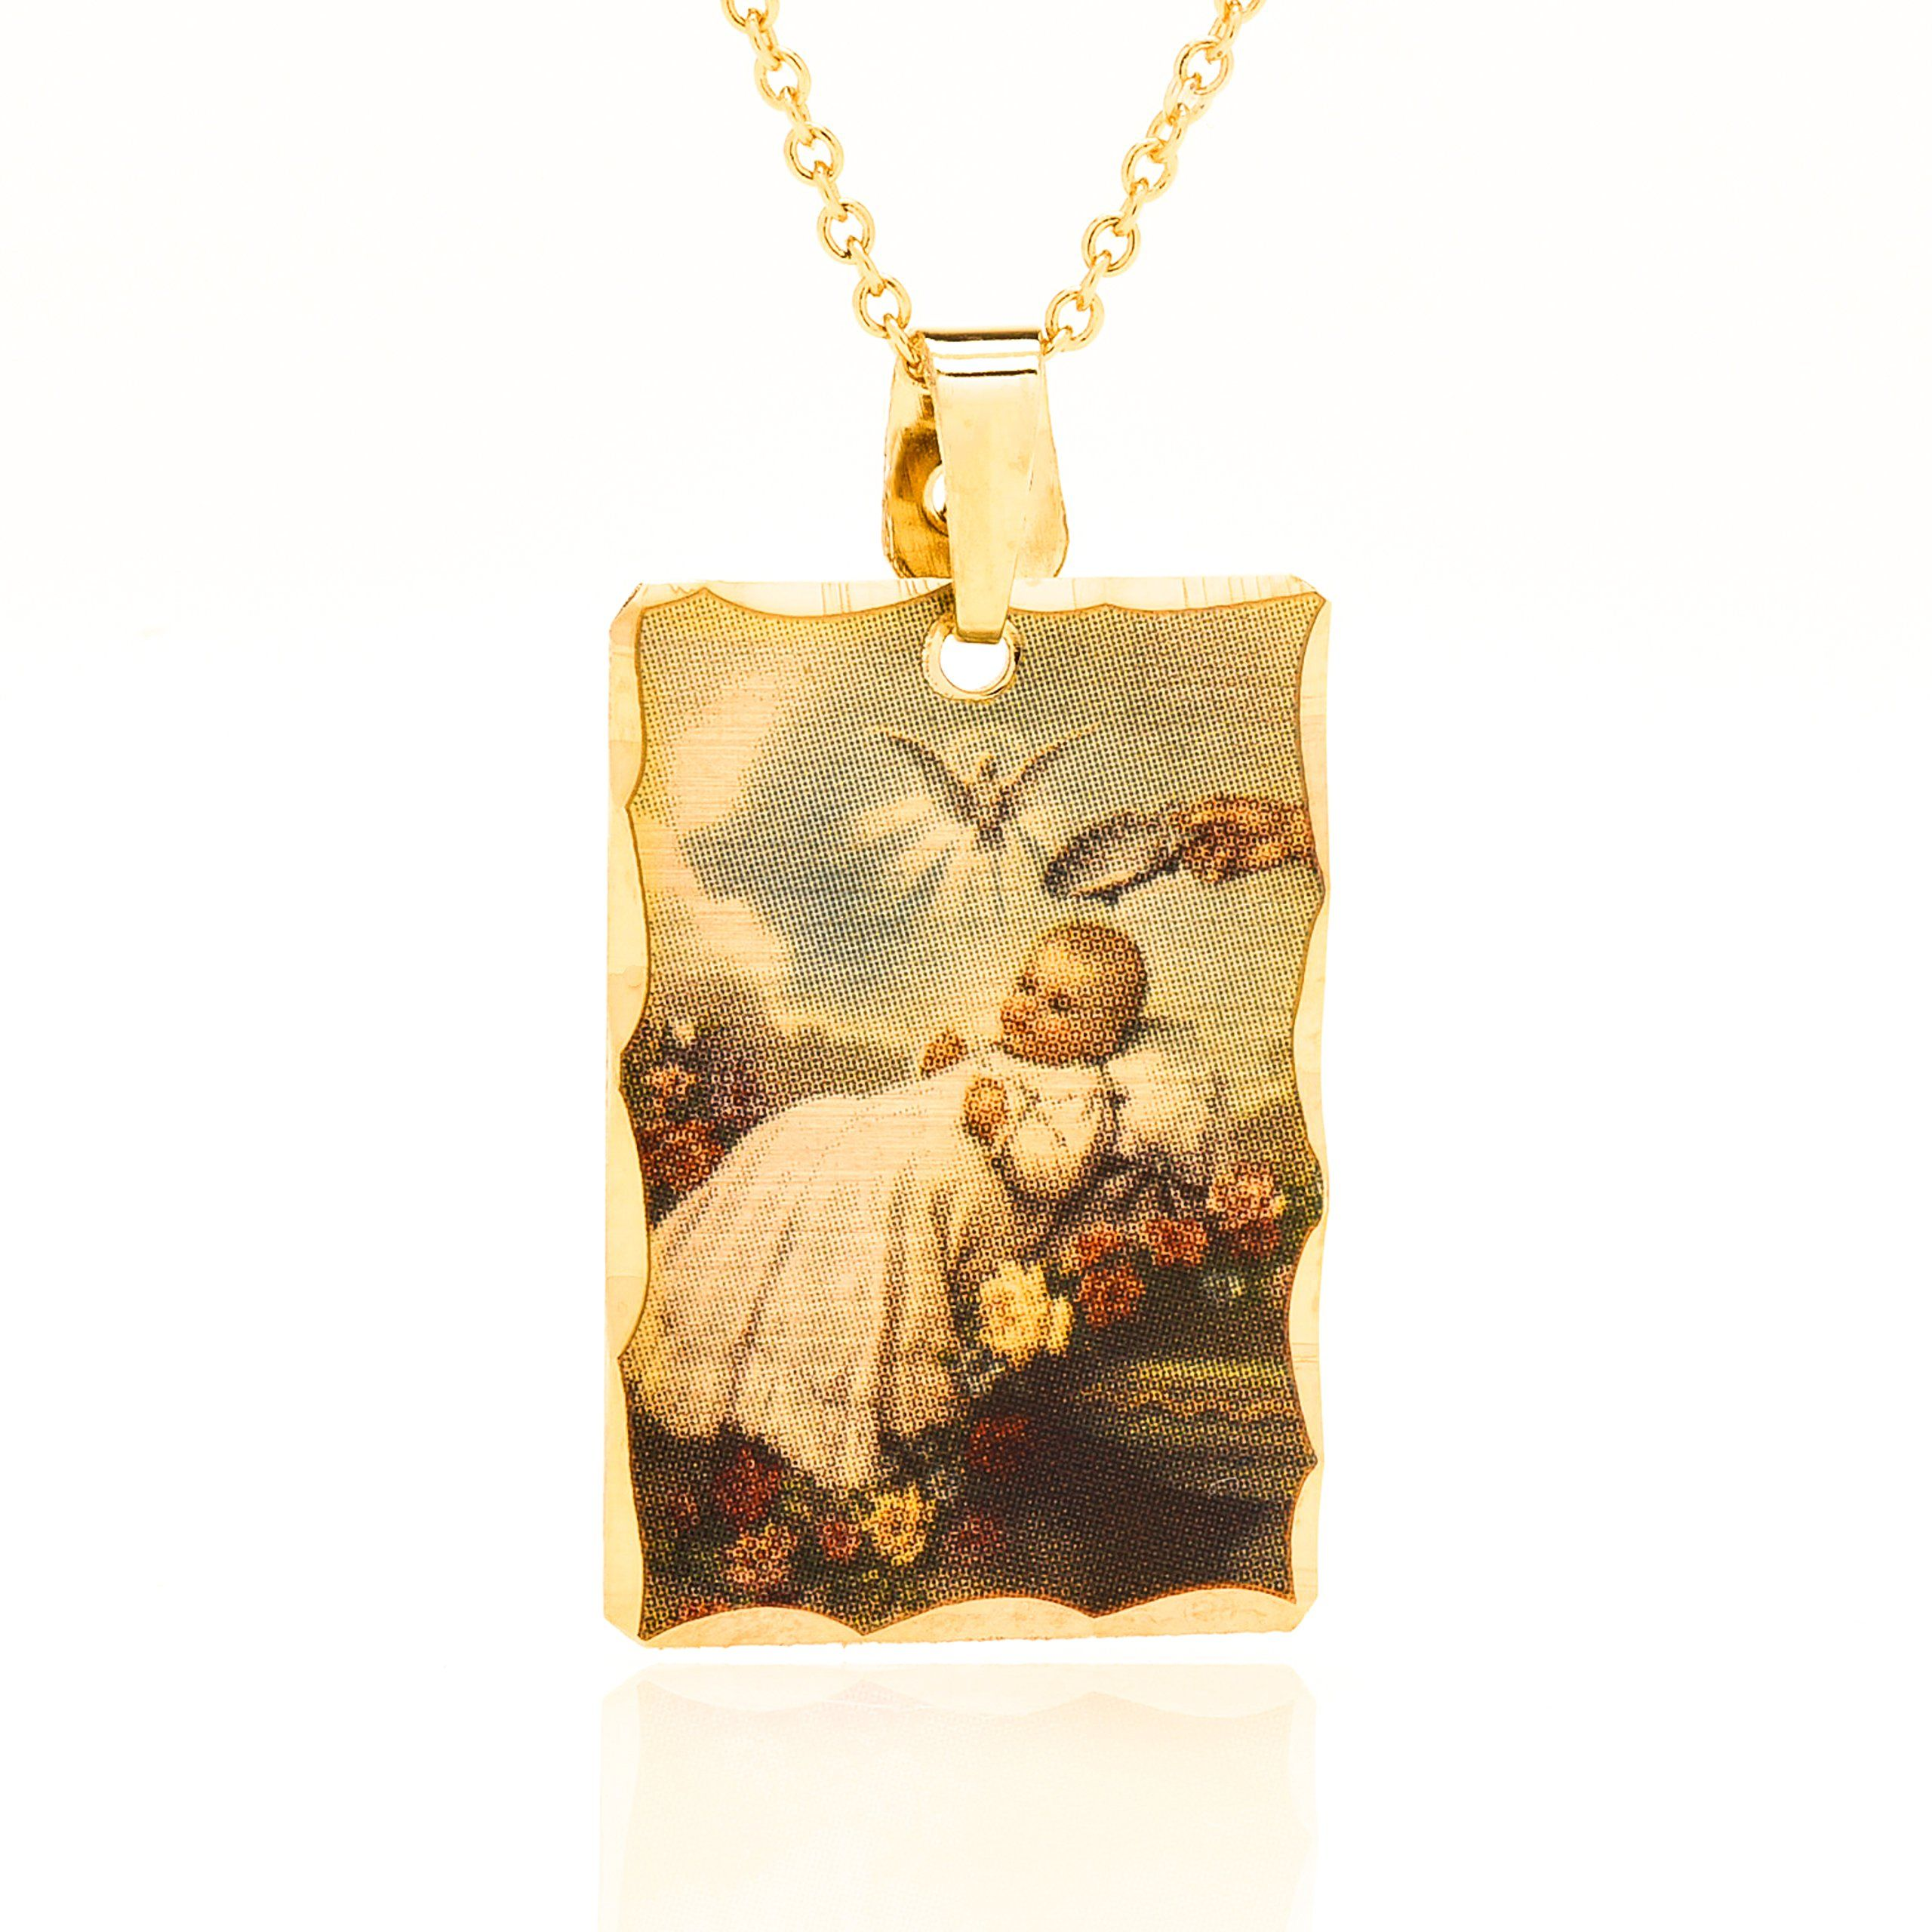 baptism jewelry madonna j necklace pendant master gold dream diamond at bulgari divas diva id s necklaces